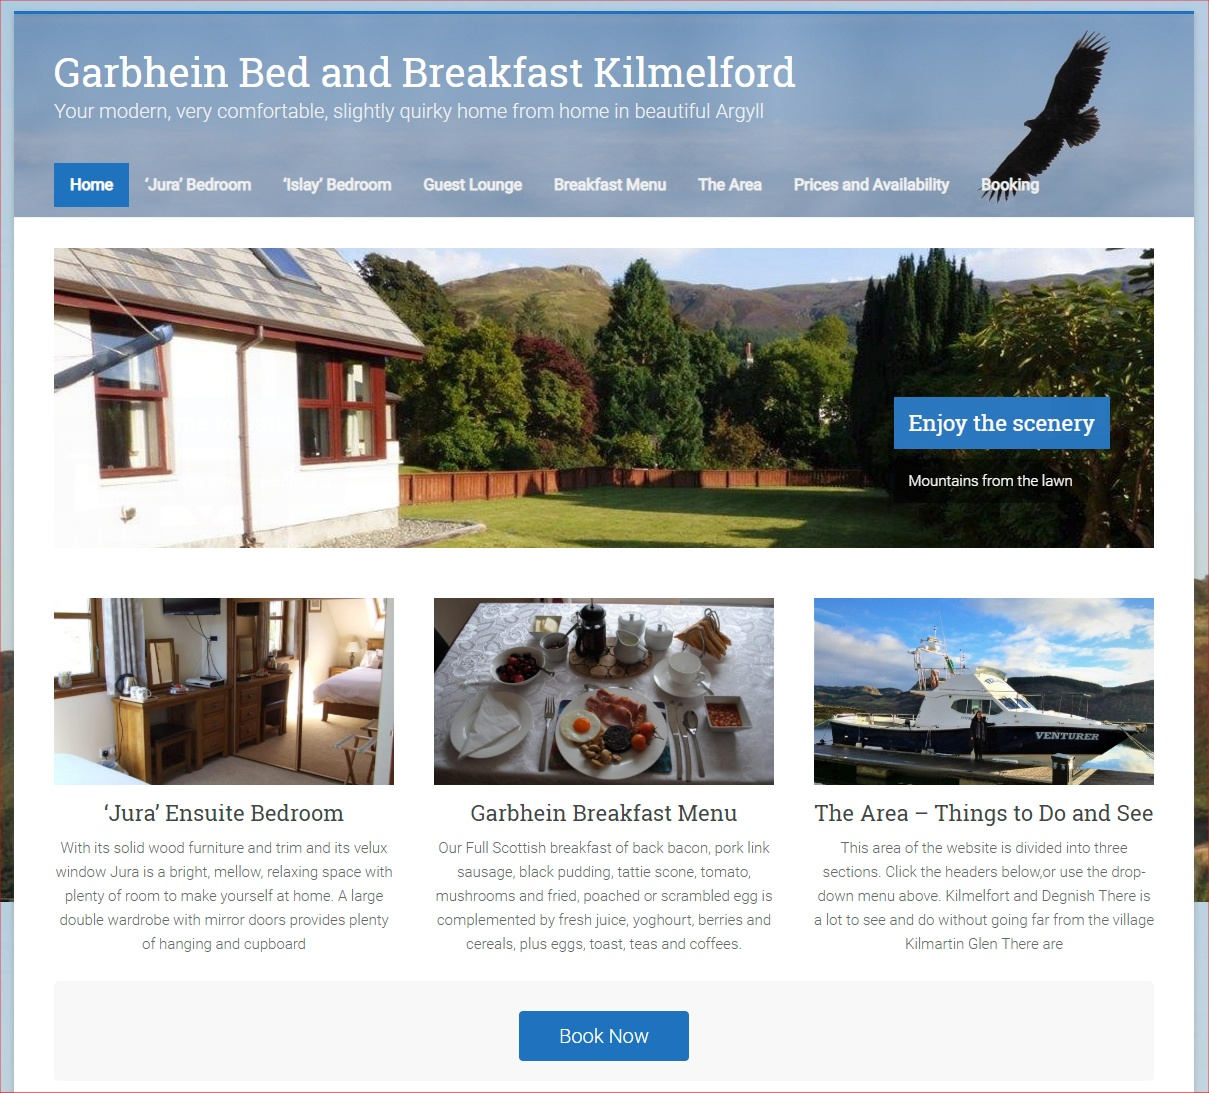 Garbhein Bed and Breakfast